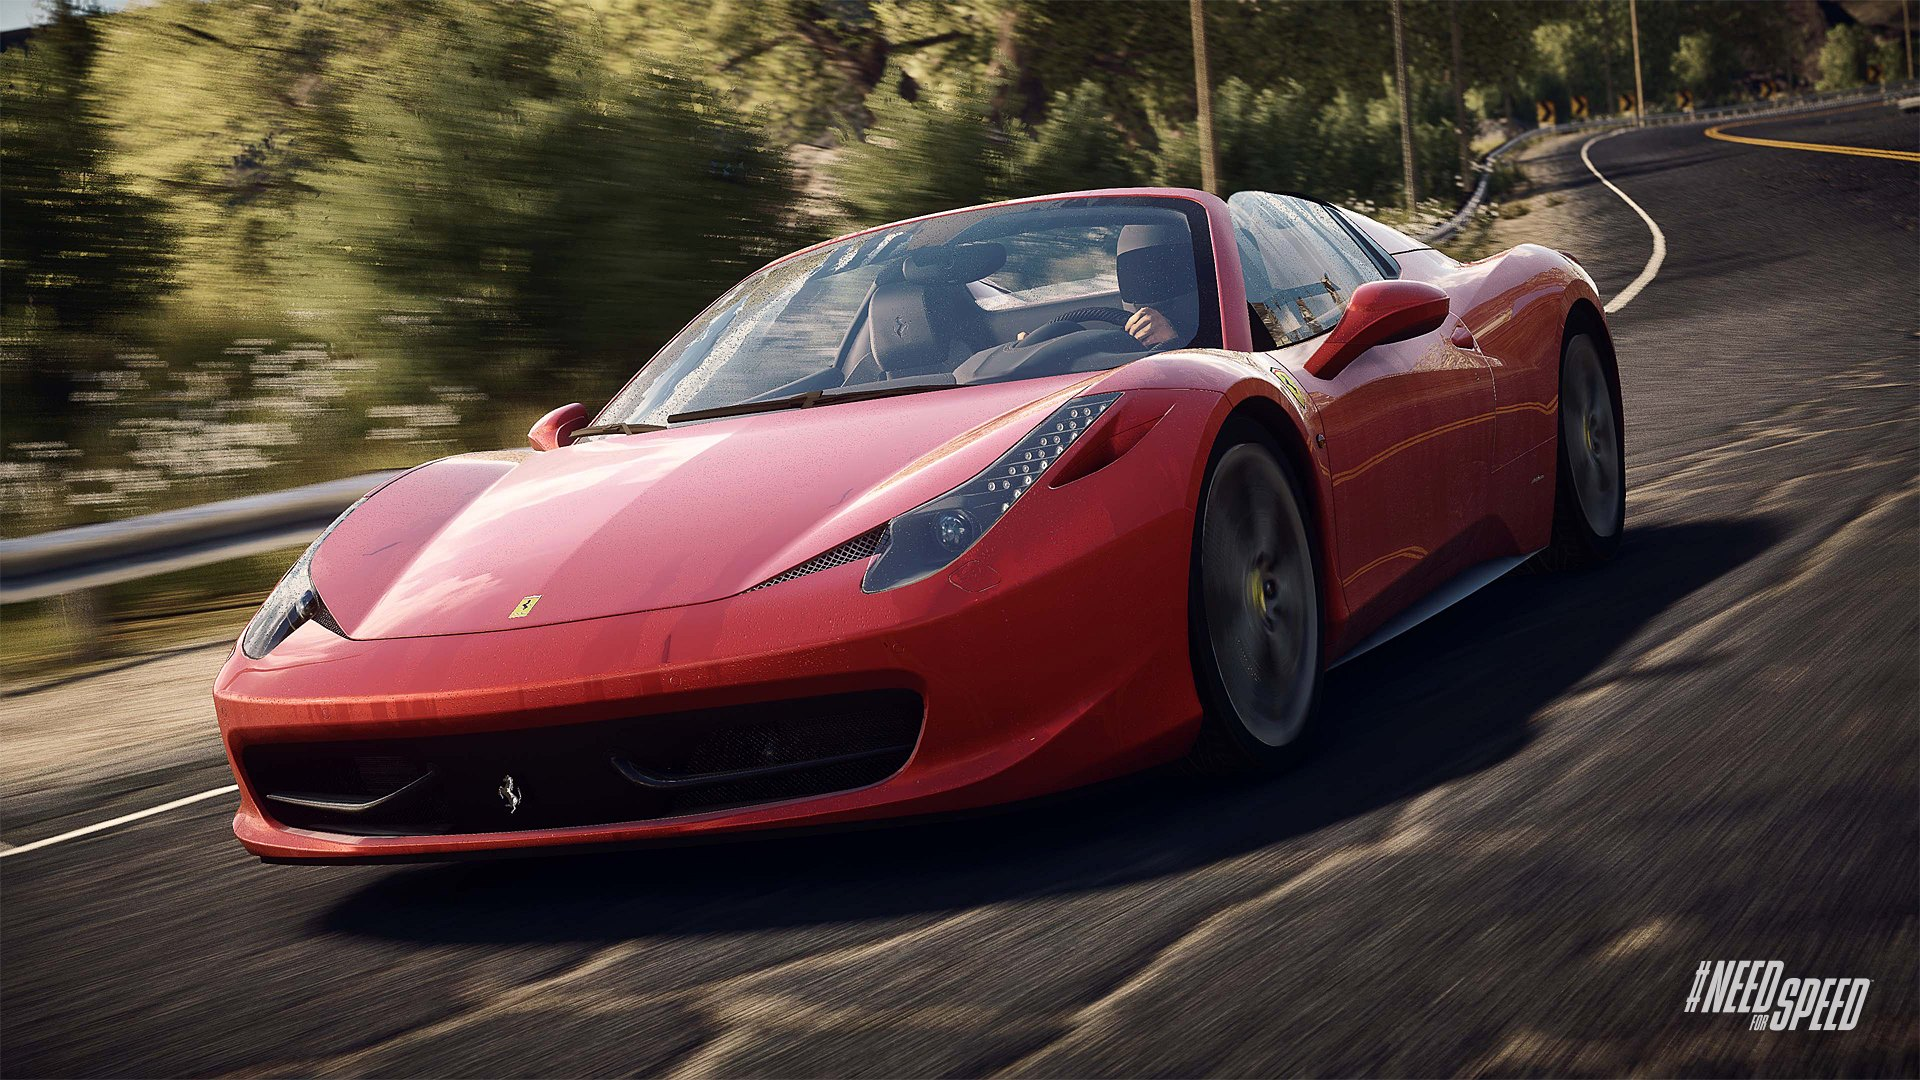 Ferrari 458 spider need for speed wiki fandom powered by wikia vanachro Images